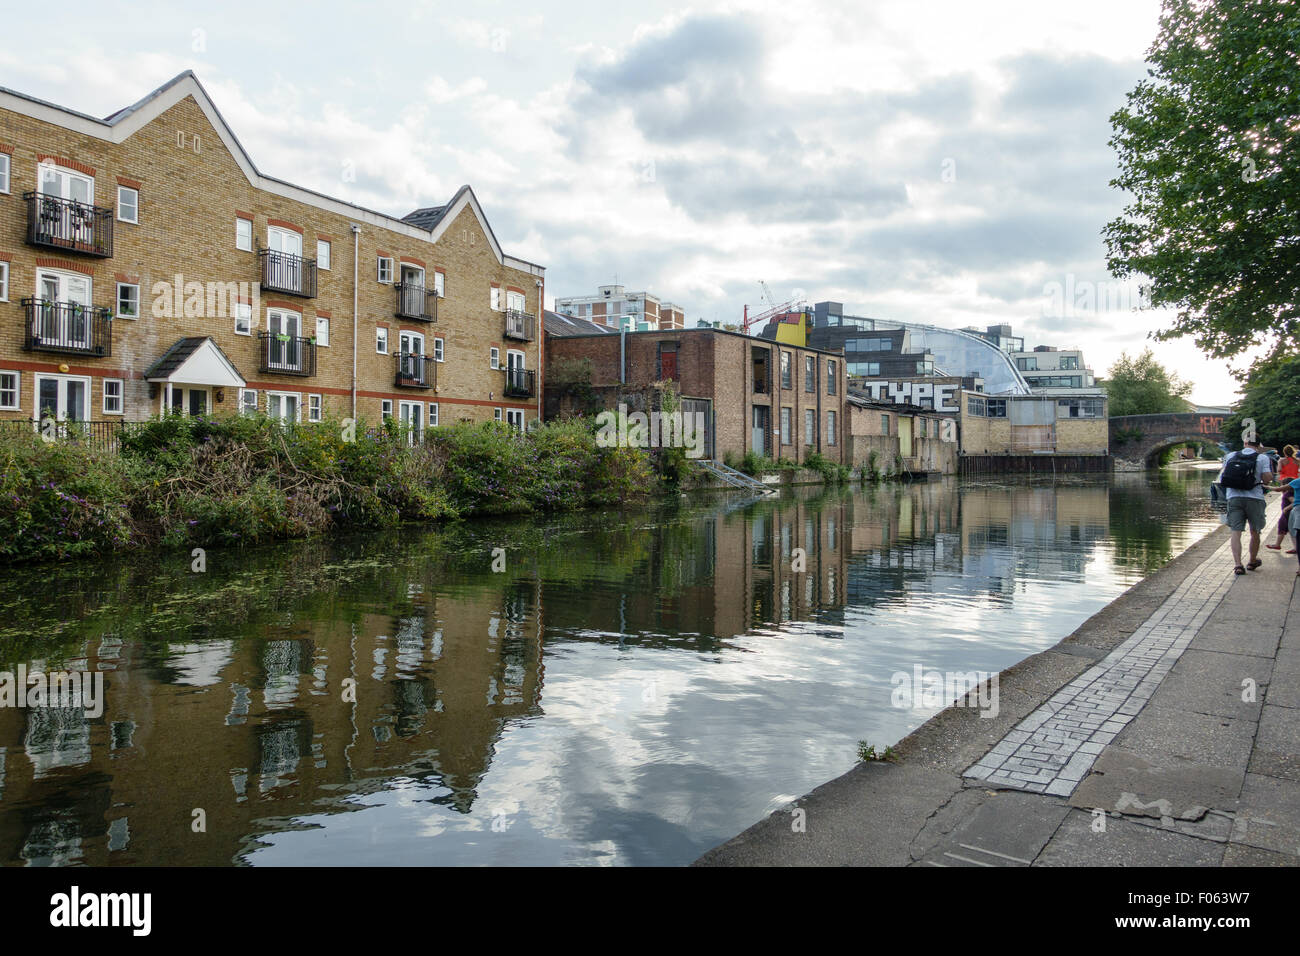 People spending a sunny weekend day in summer 2015 by a canal in East London. - Stock Image